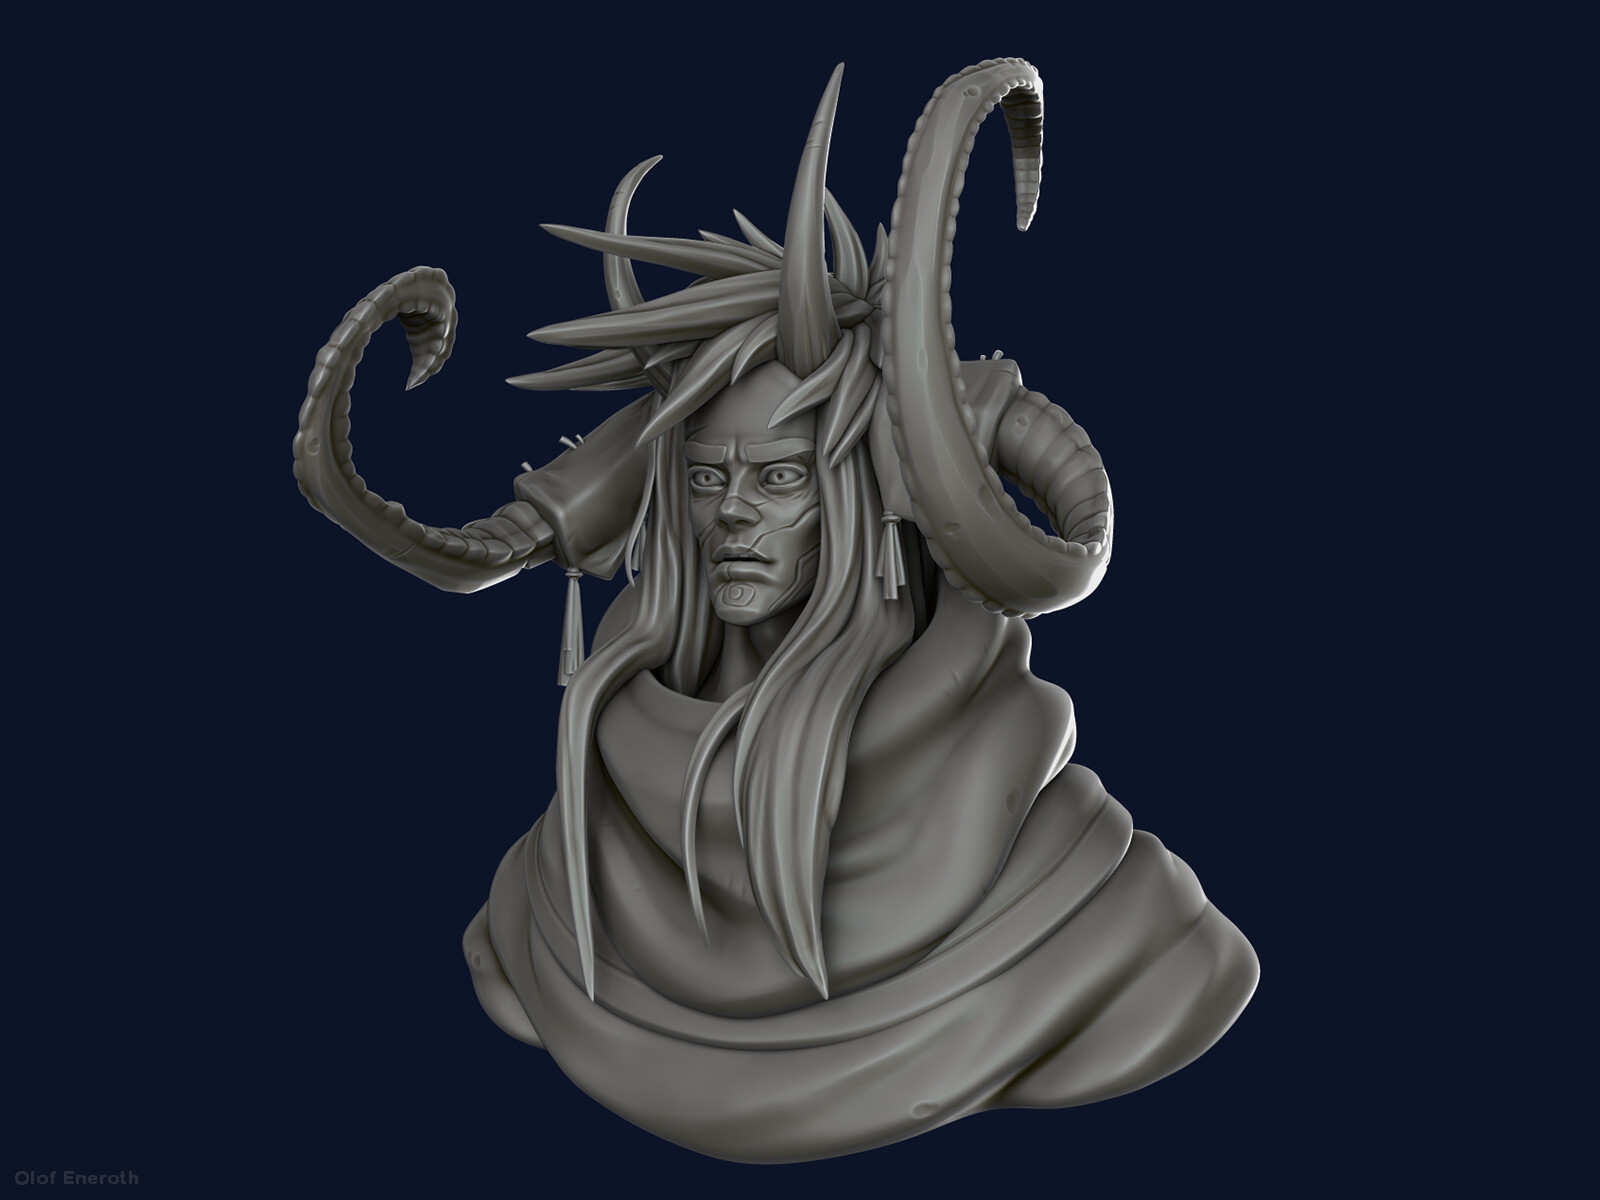 Highpoly rendered in Zbrush